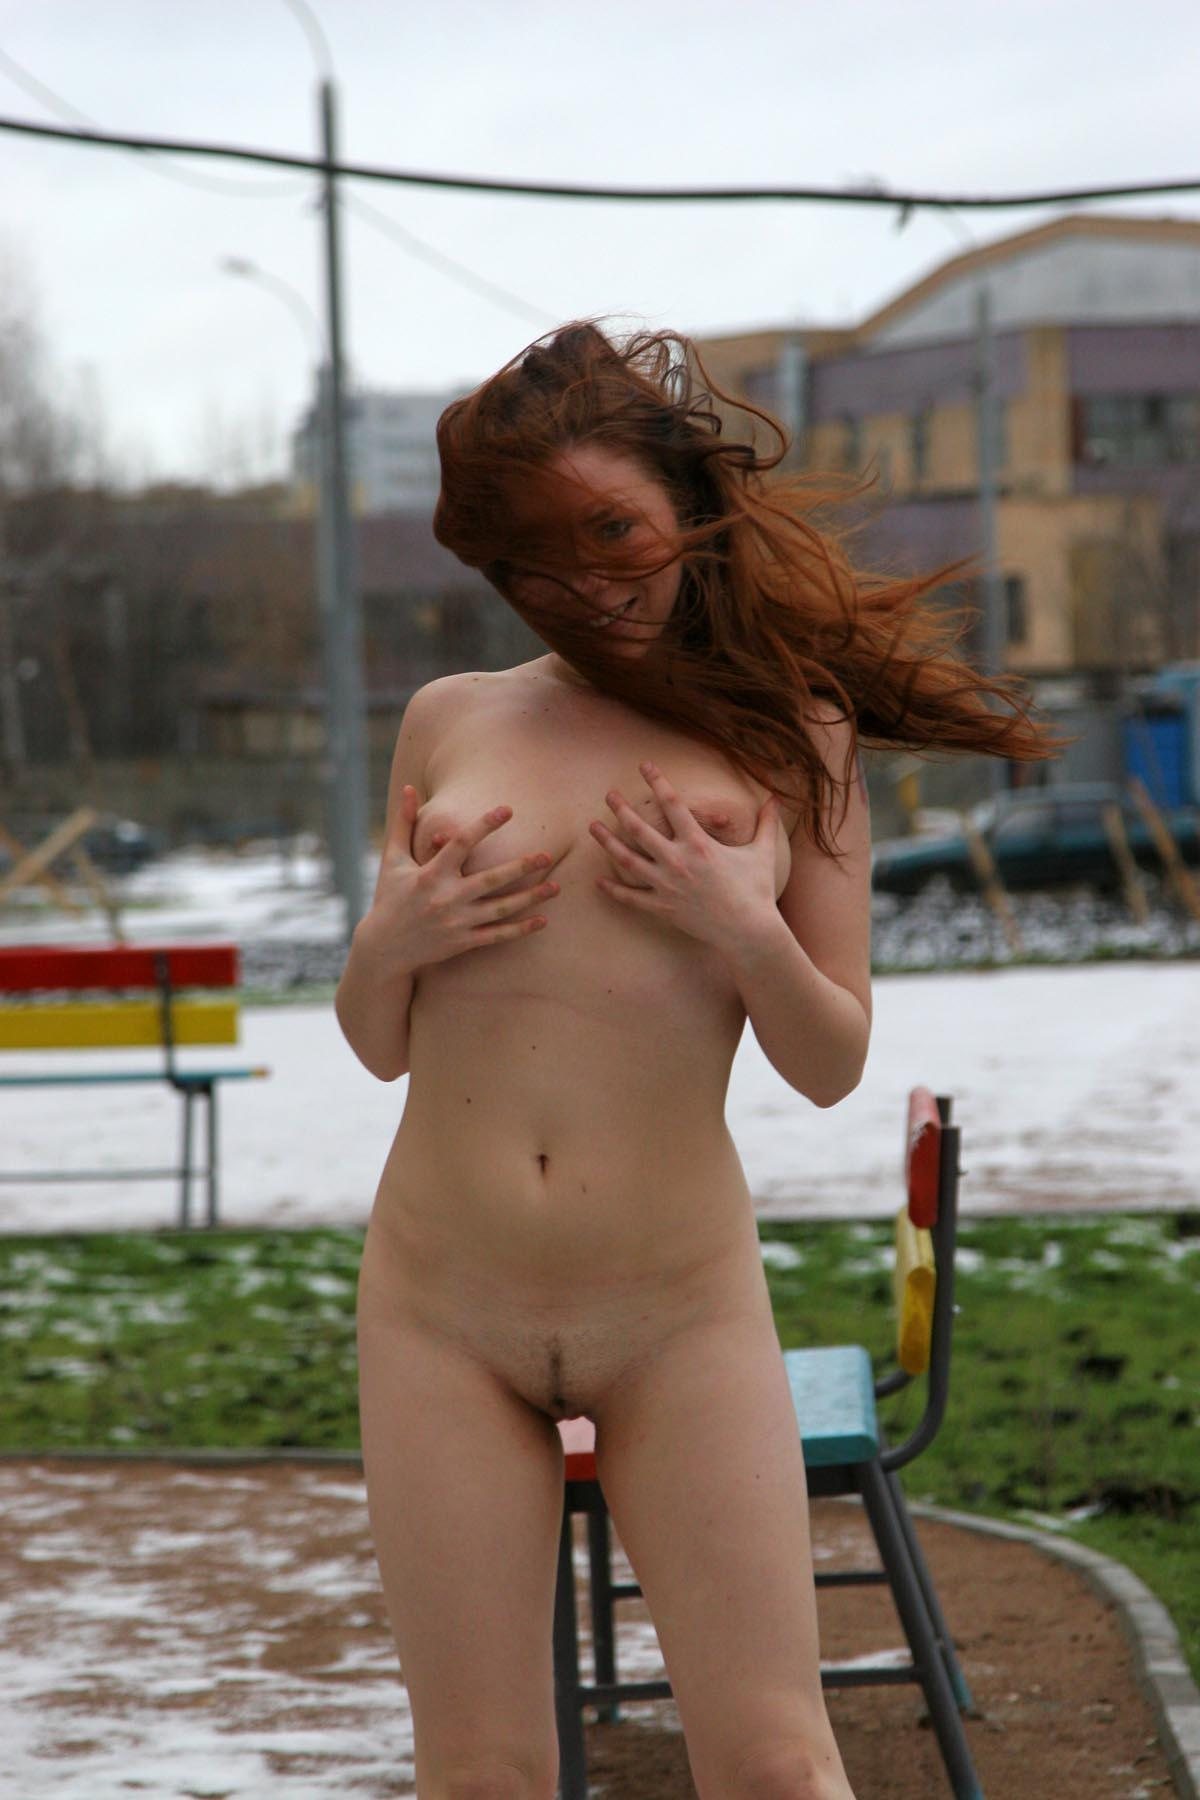 Russian Redhead Chick With Tattoo Posing Naked At Yard -8196